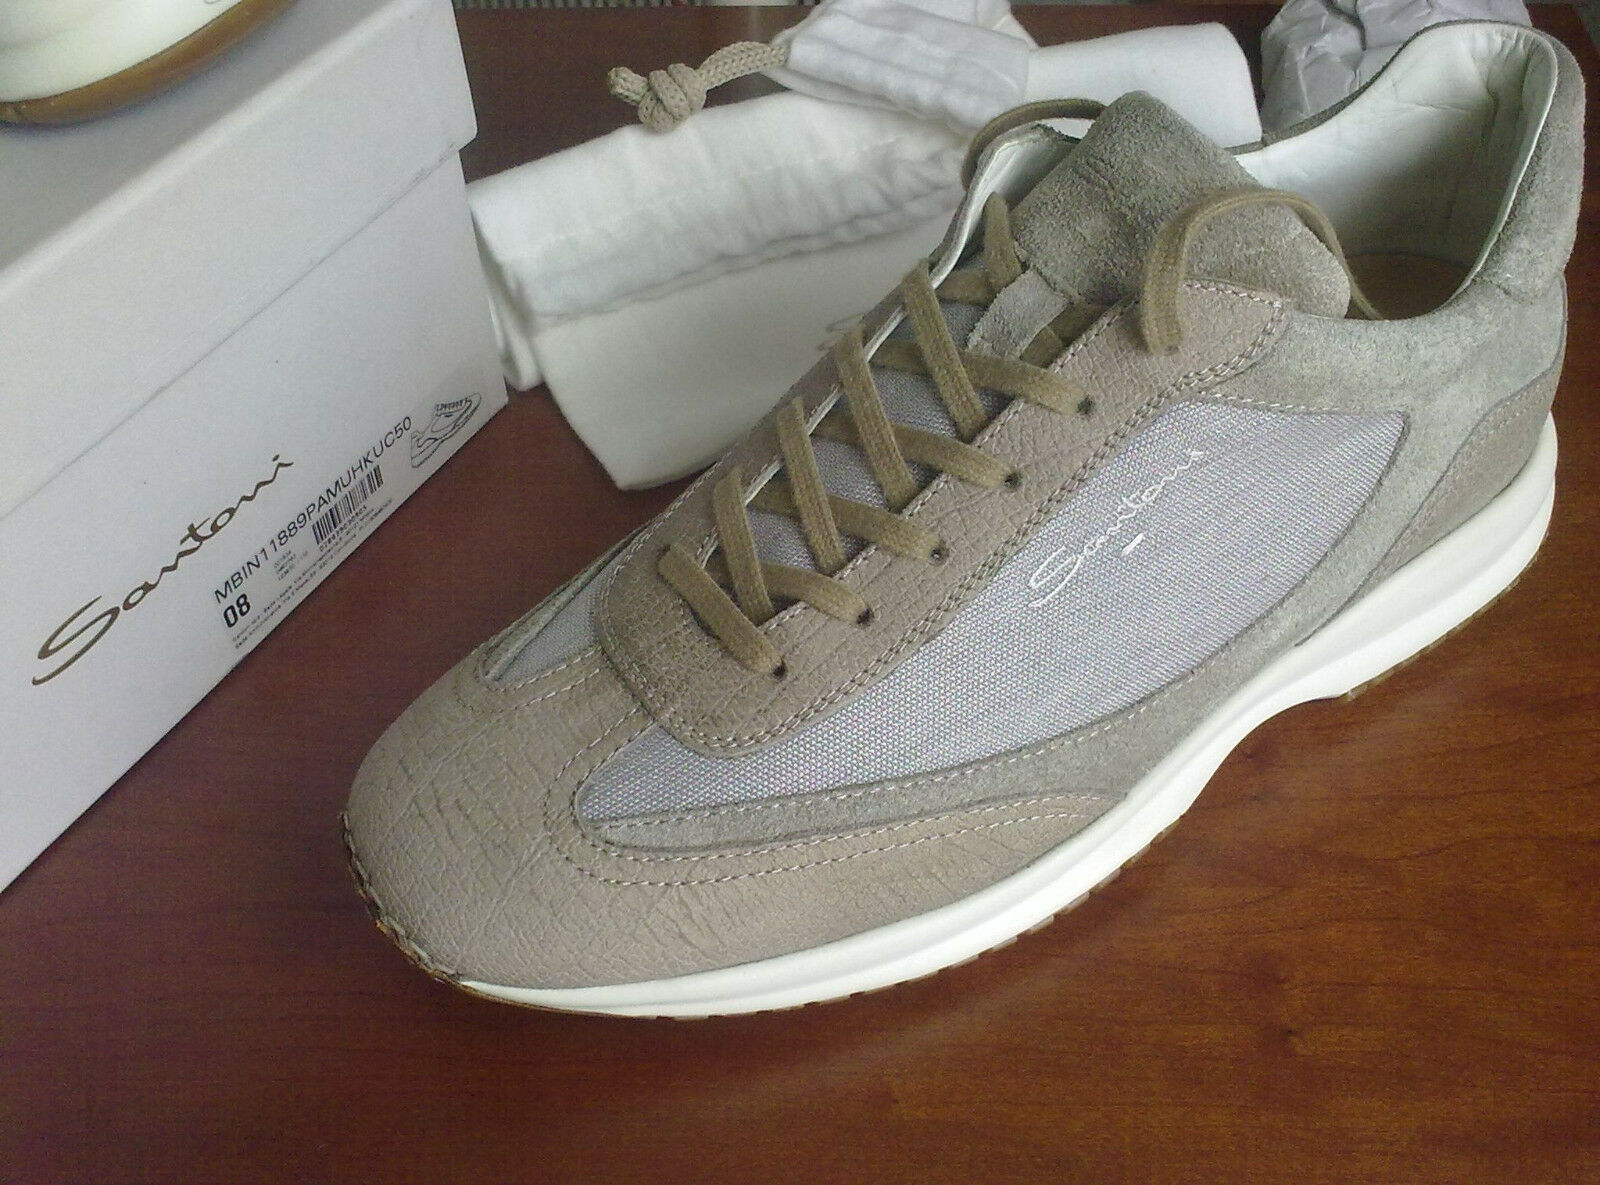 SANTONI,LIGHT BROWN/green/GREY LEATHER/suede/CANVAS,size 42 ITA-8 UK